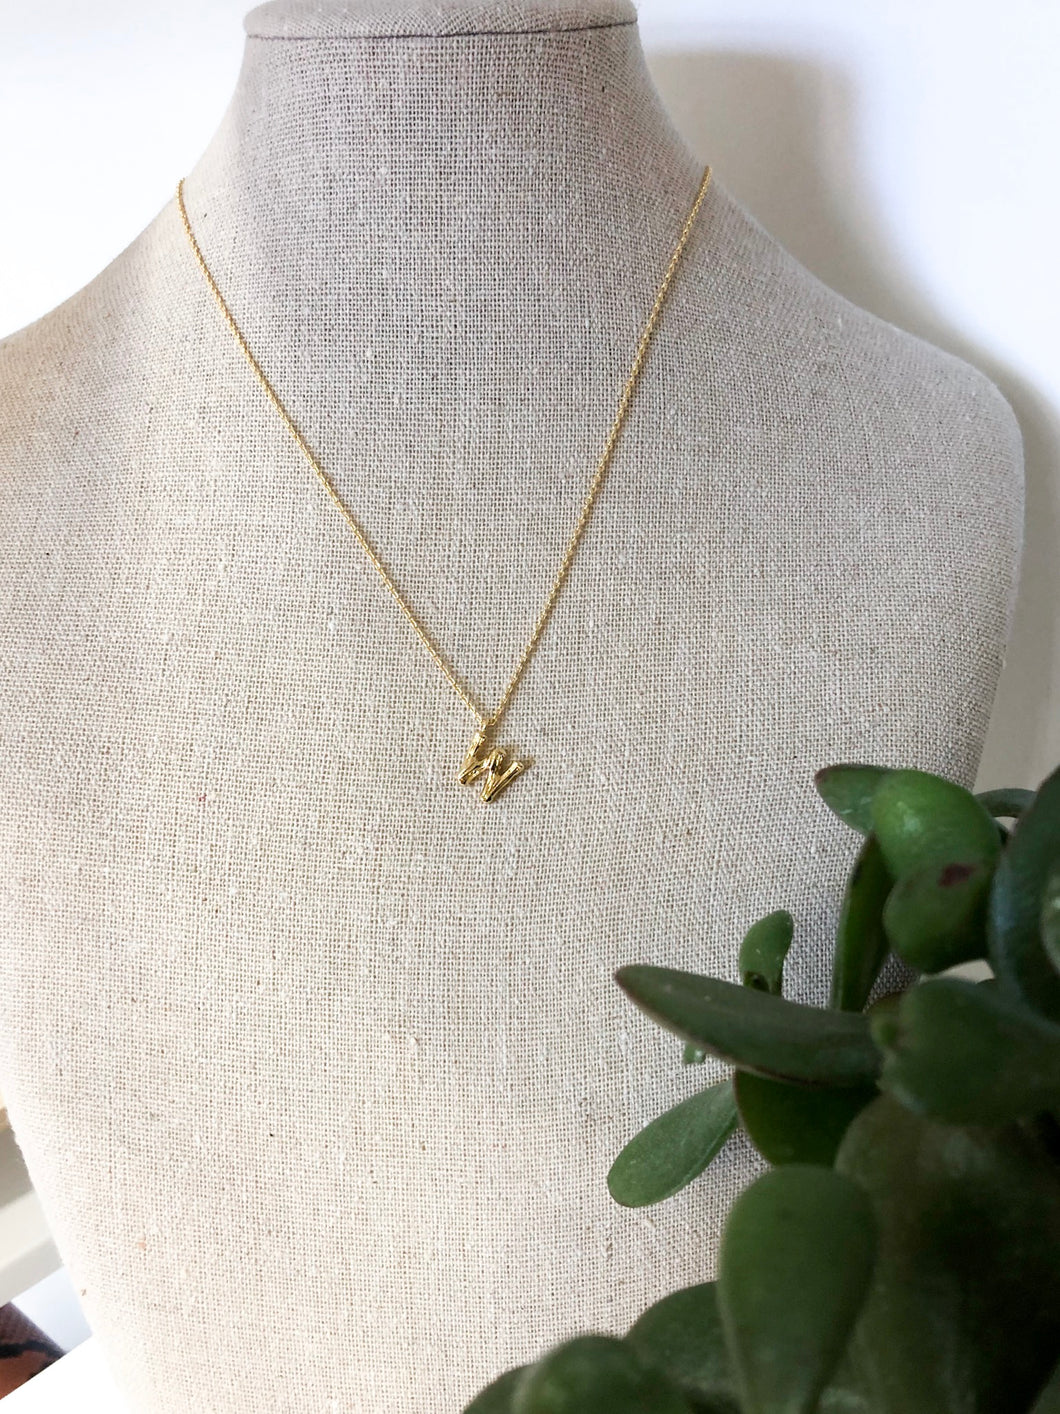 Bamboo Initial Necklace - W